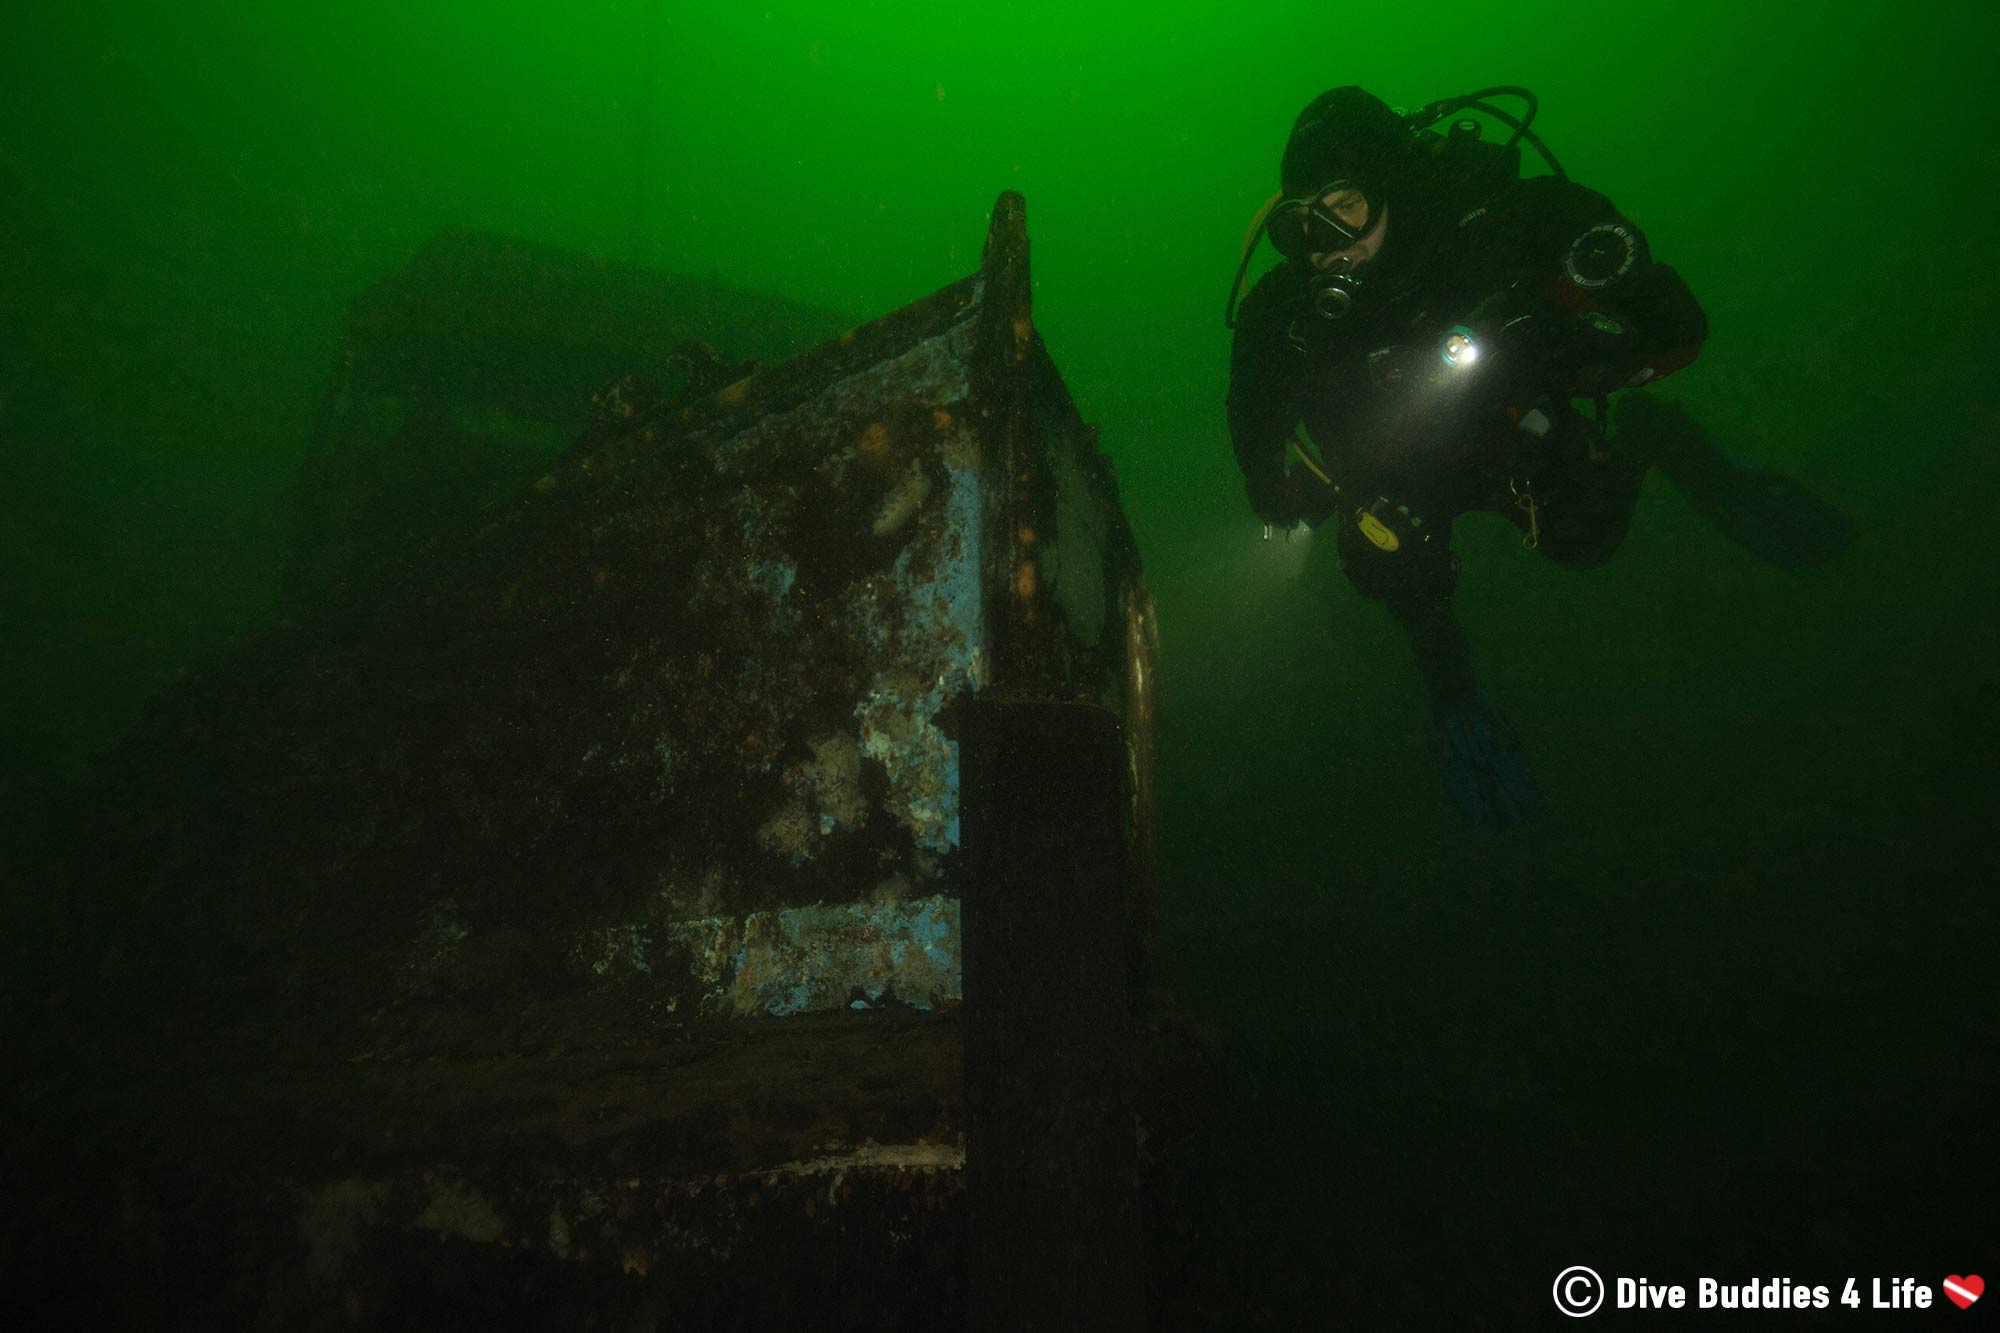 Joey At The Bow Of A Shipwreck In Stoney Cove Inland Diving Quarry, England, Europe